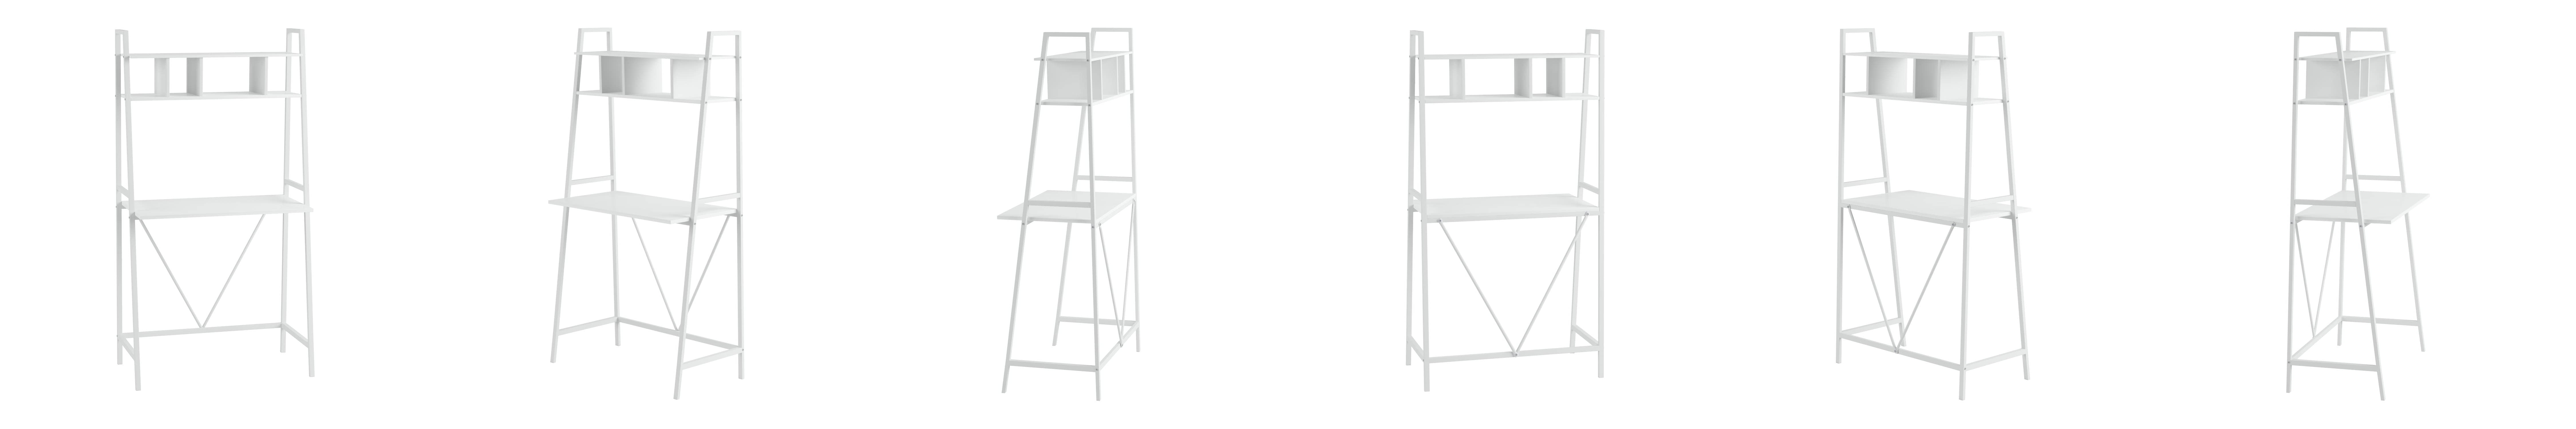 two leaning storage ladder bookcase monarch with bookcases specialties inch stora cappuccino drawers shelf